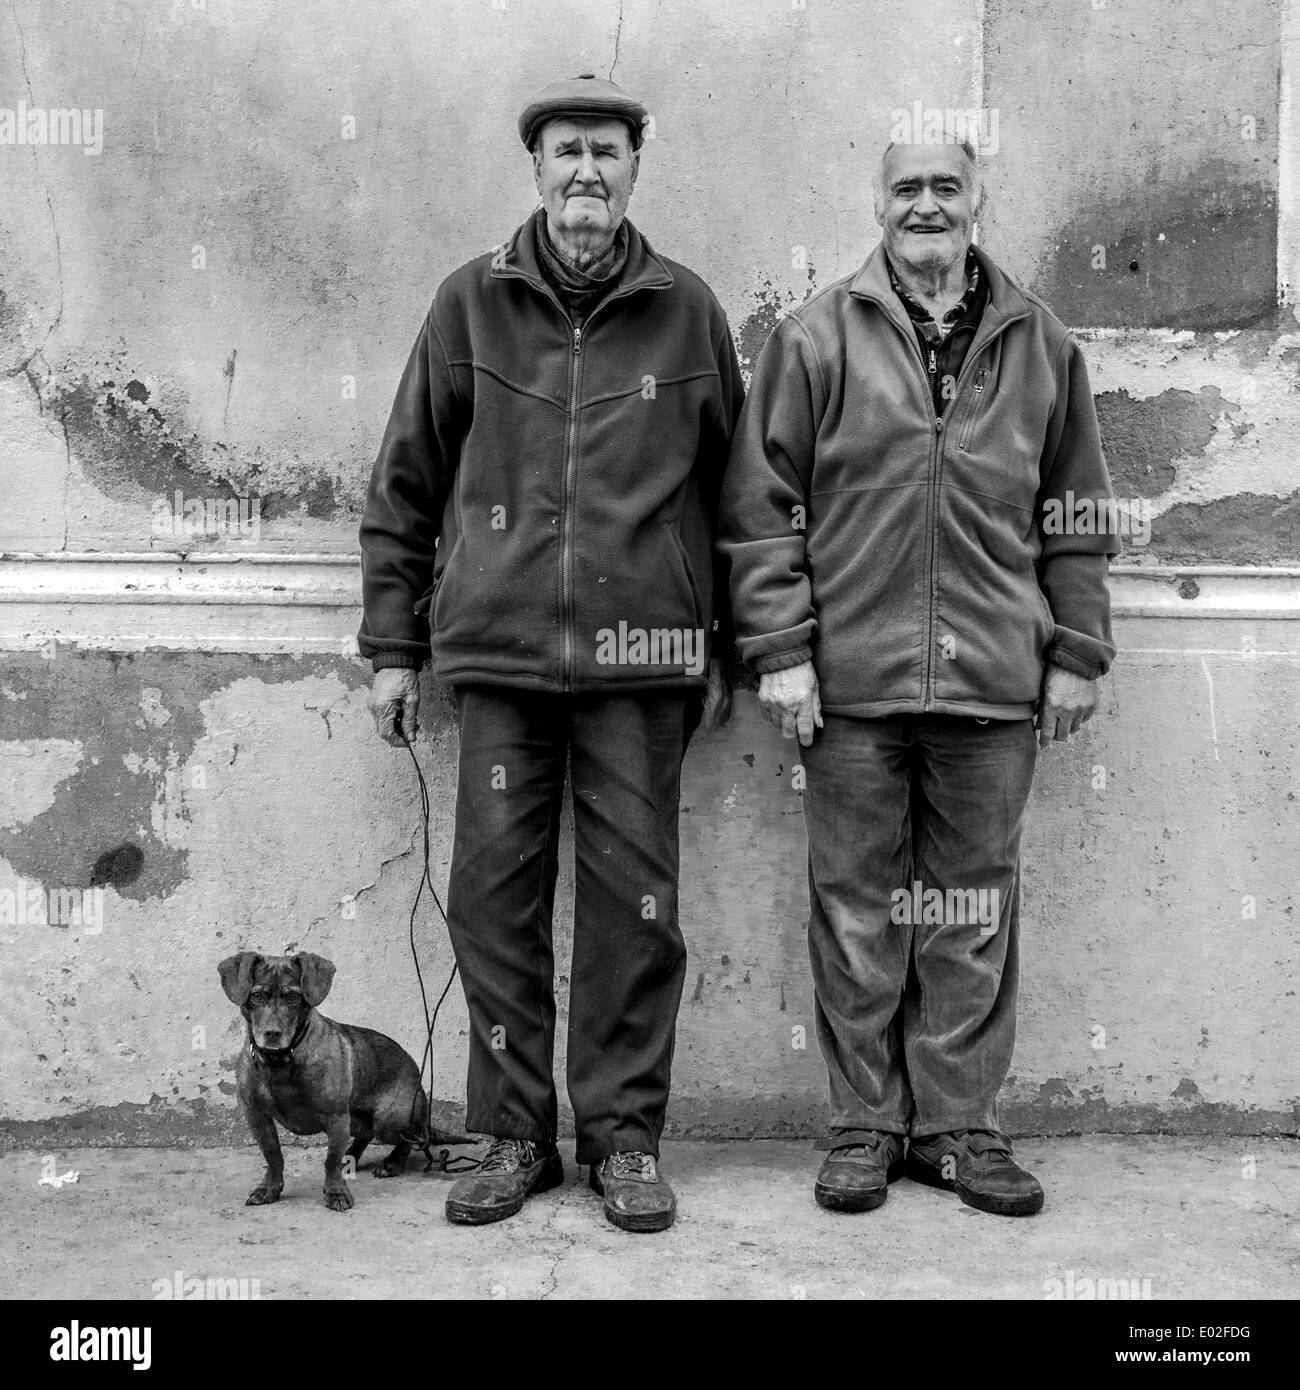 Two old men with a Dachshund, Spain - Stock Image